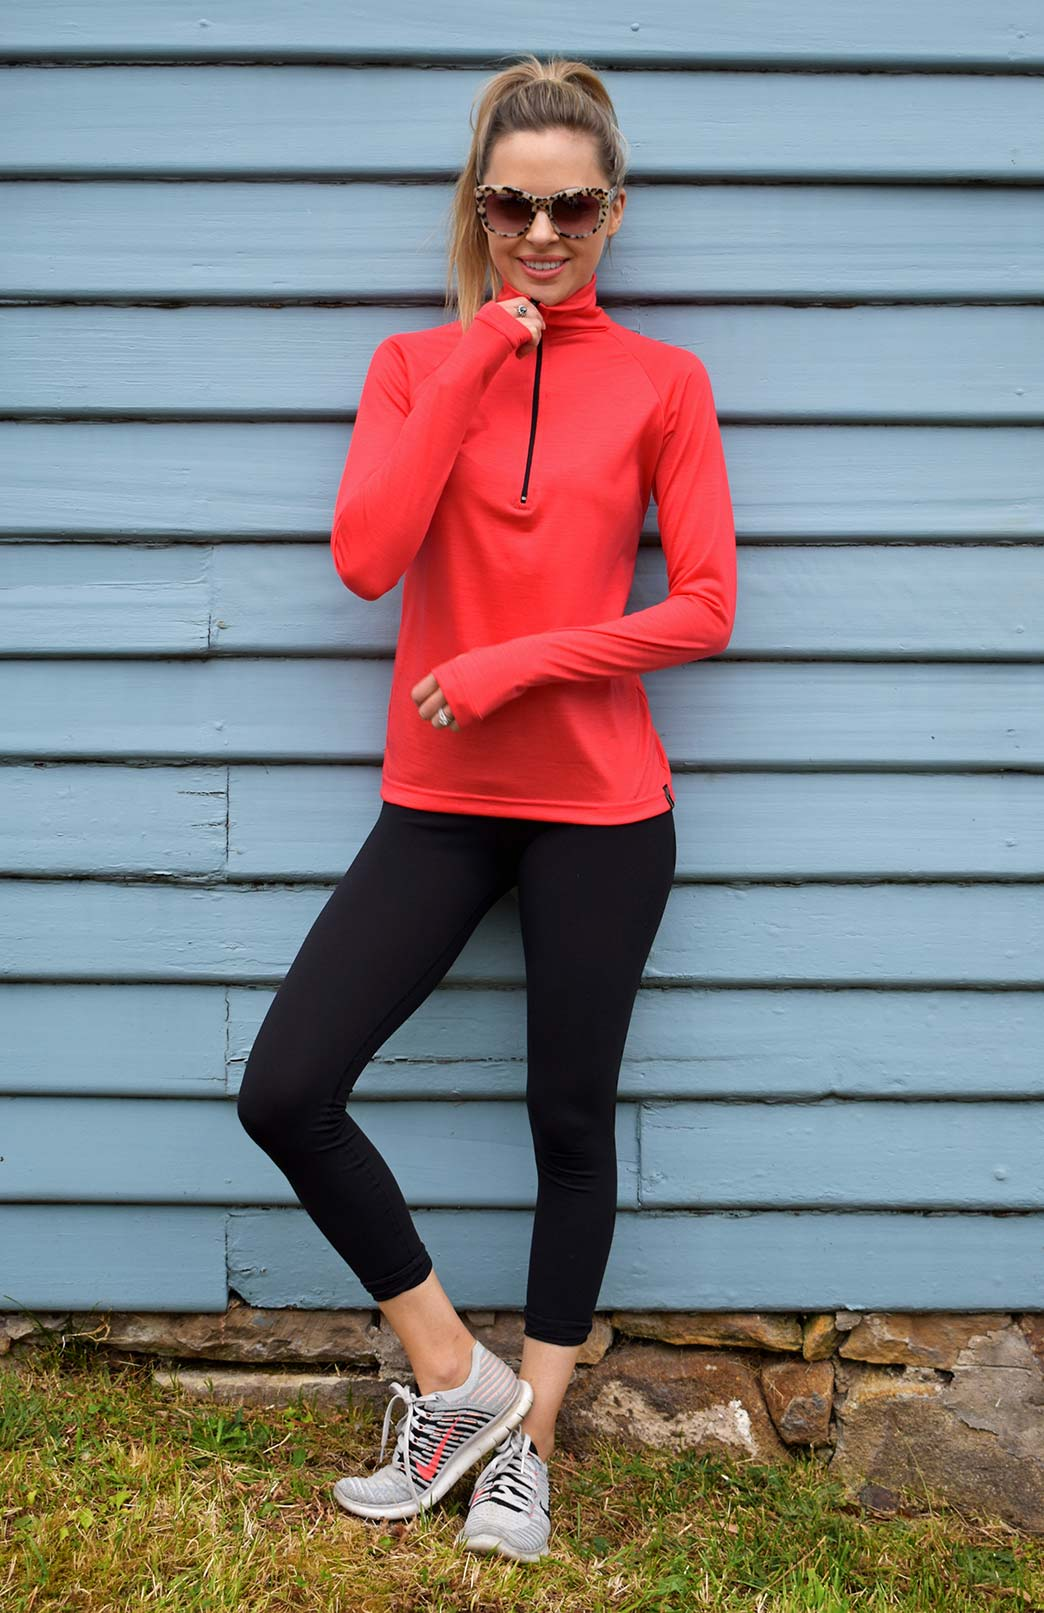 Zip Neck Top - Ultralight (170g) - Women's Hot Coral Ultralight Wool Zip Neck Pullover Style Top with Thumb Holes - Smitten Merino Tasmania Australia